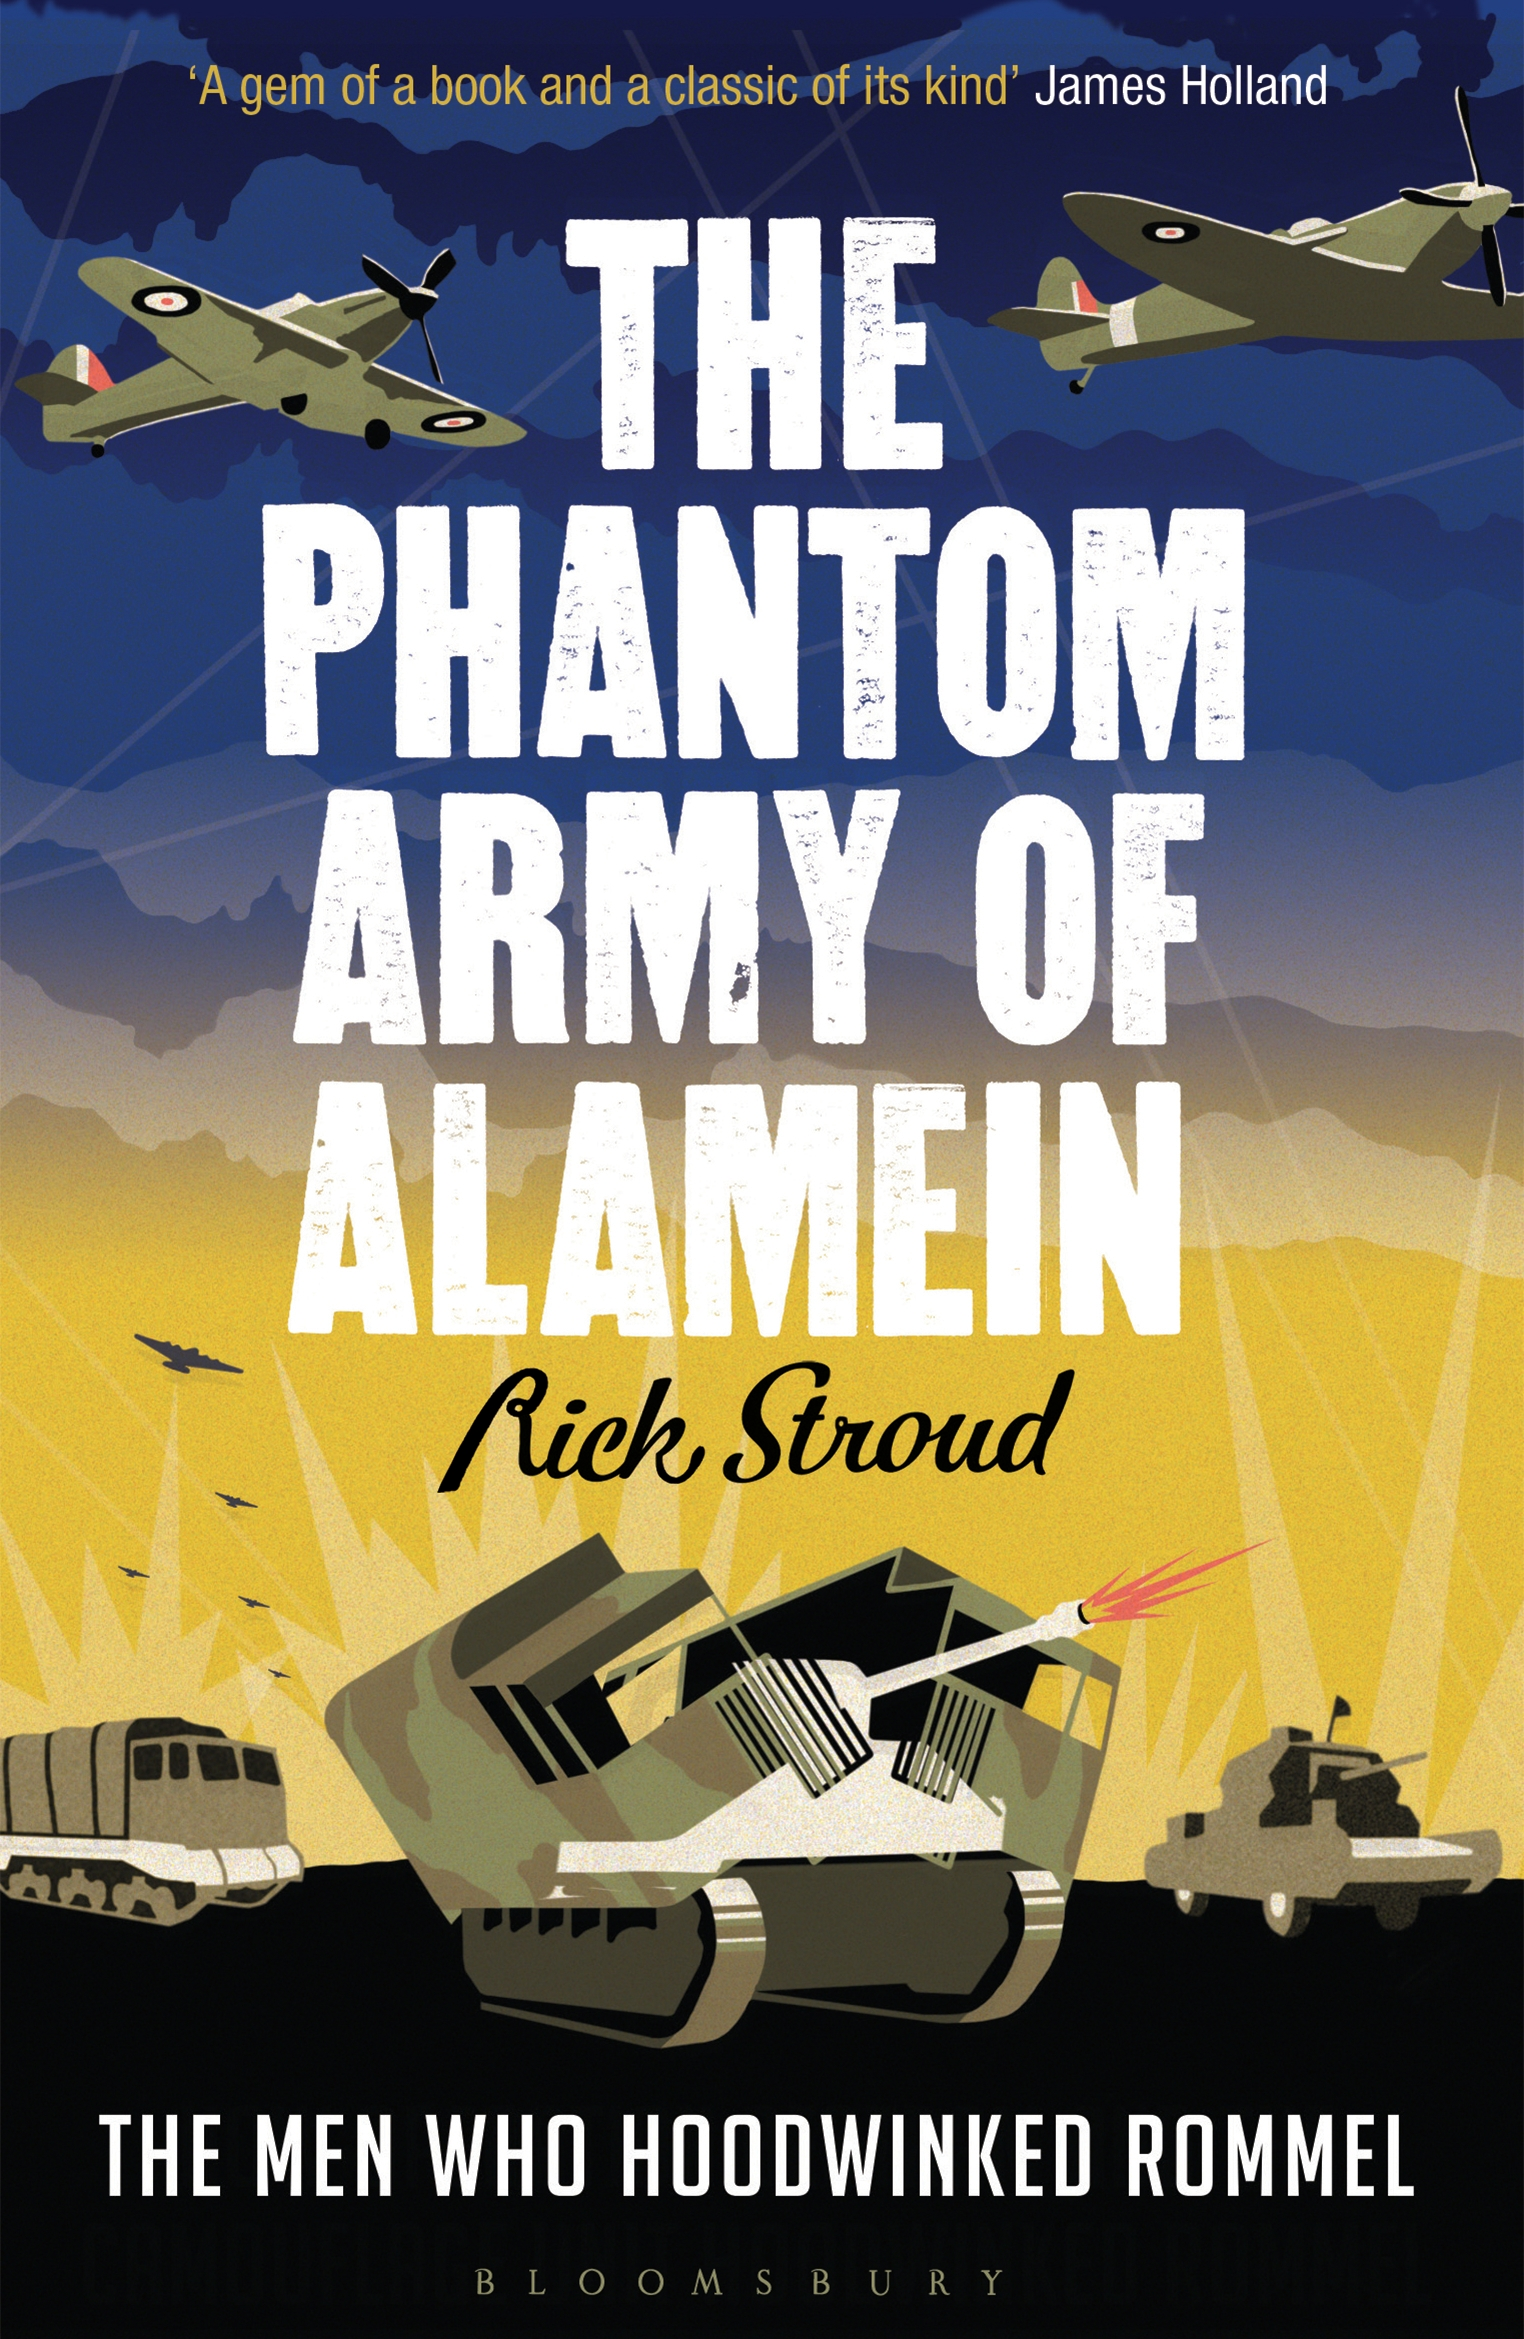 The Phantom Army of Alamein The Men Who Hoodwinked Rommel